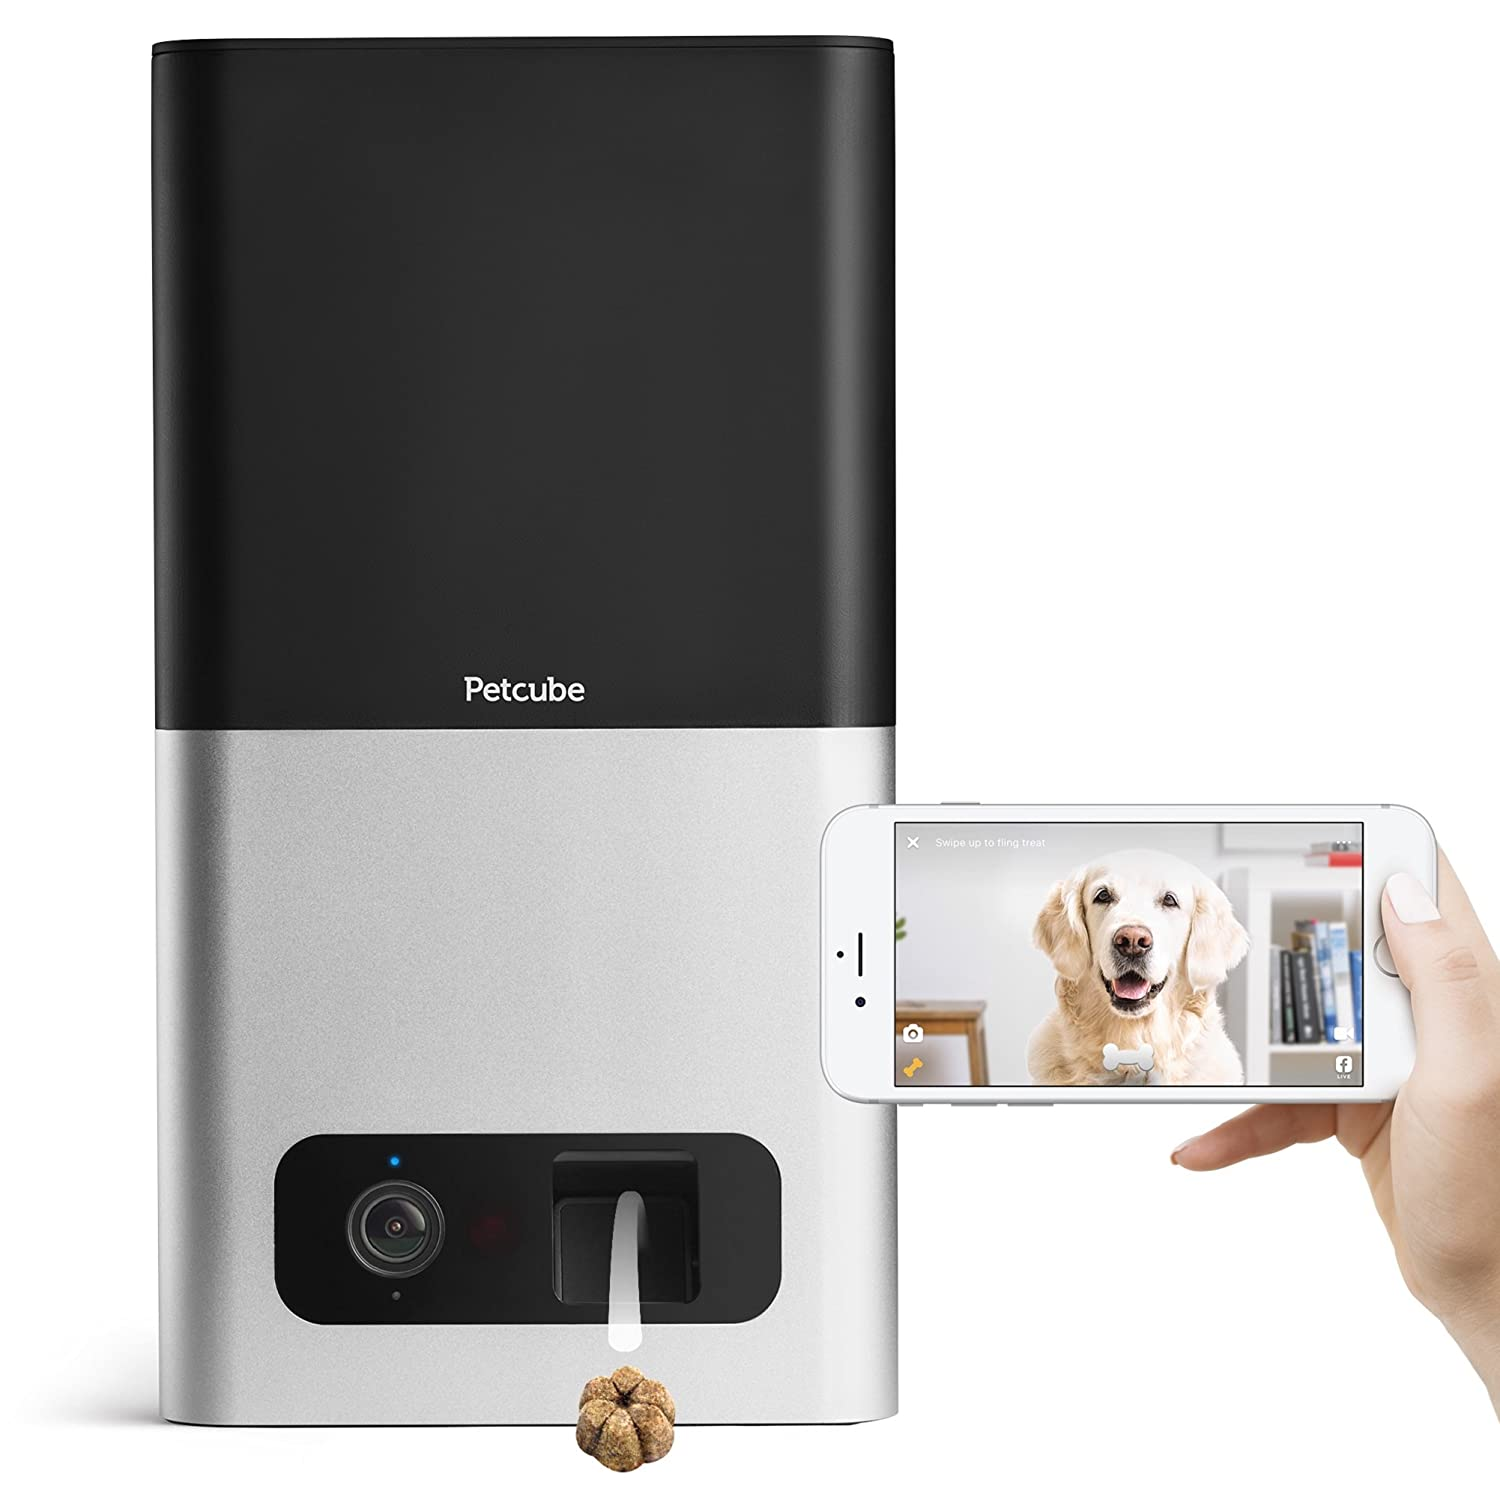 Petcube Bites Wi-Fi Pet Camera and Treat Dispenser - Carbon Black